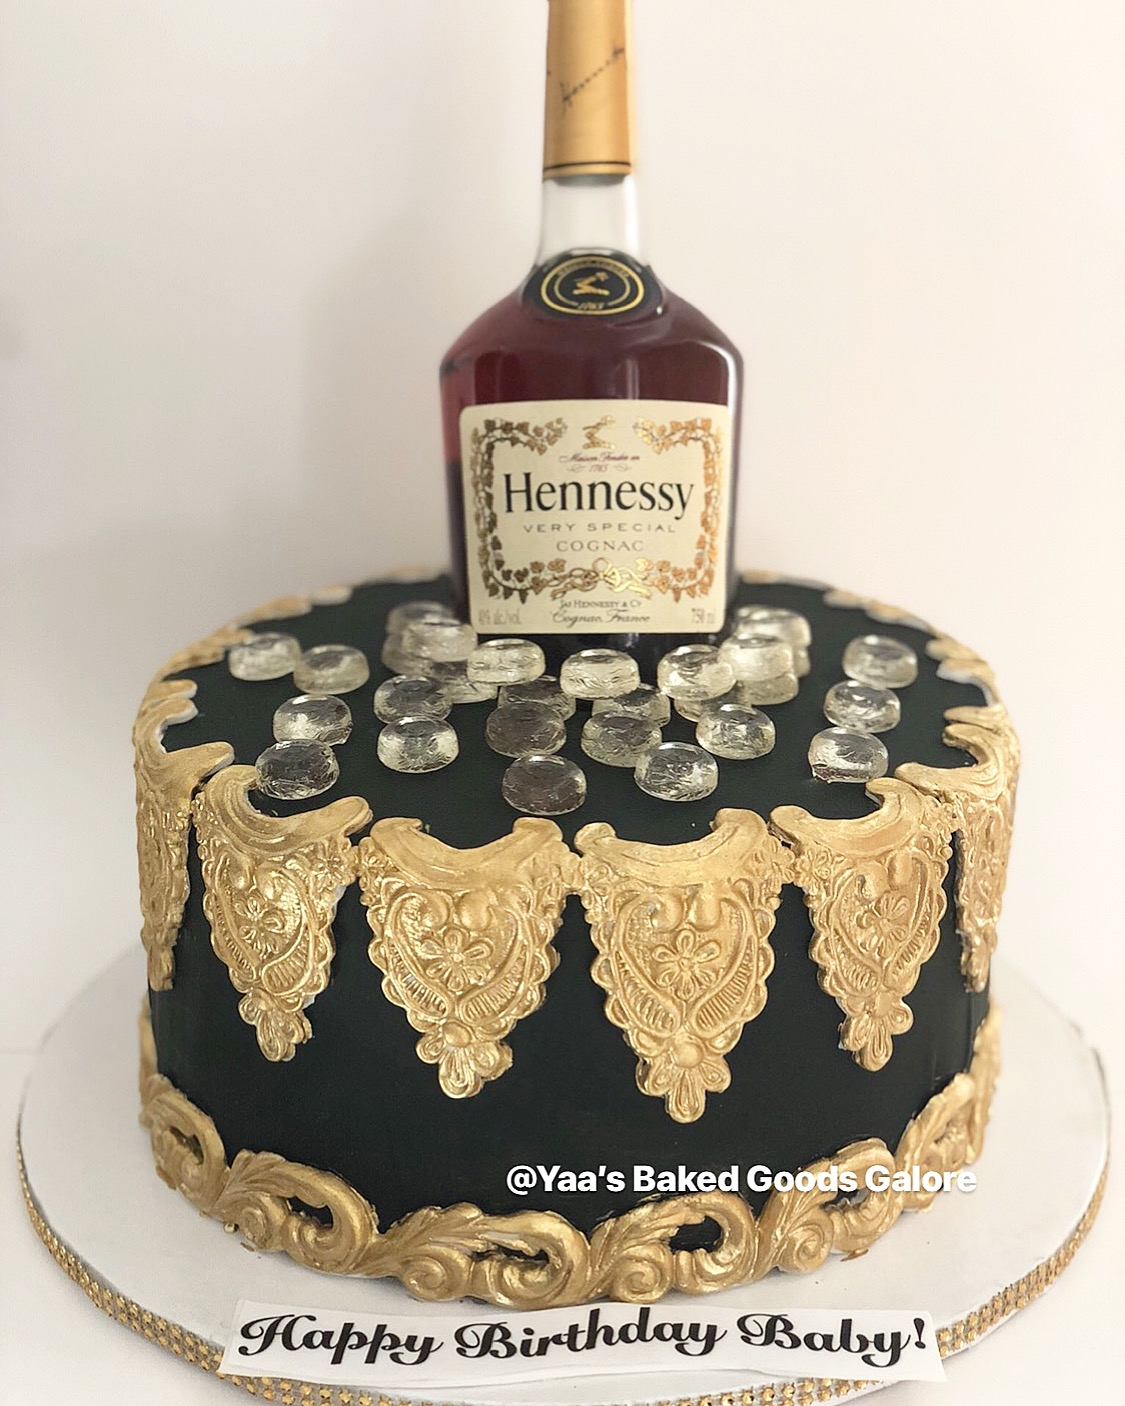 10″ Hennessy bottle cake – Yaa's Baked Goods Galore